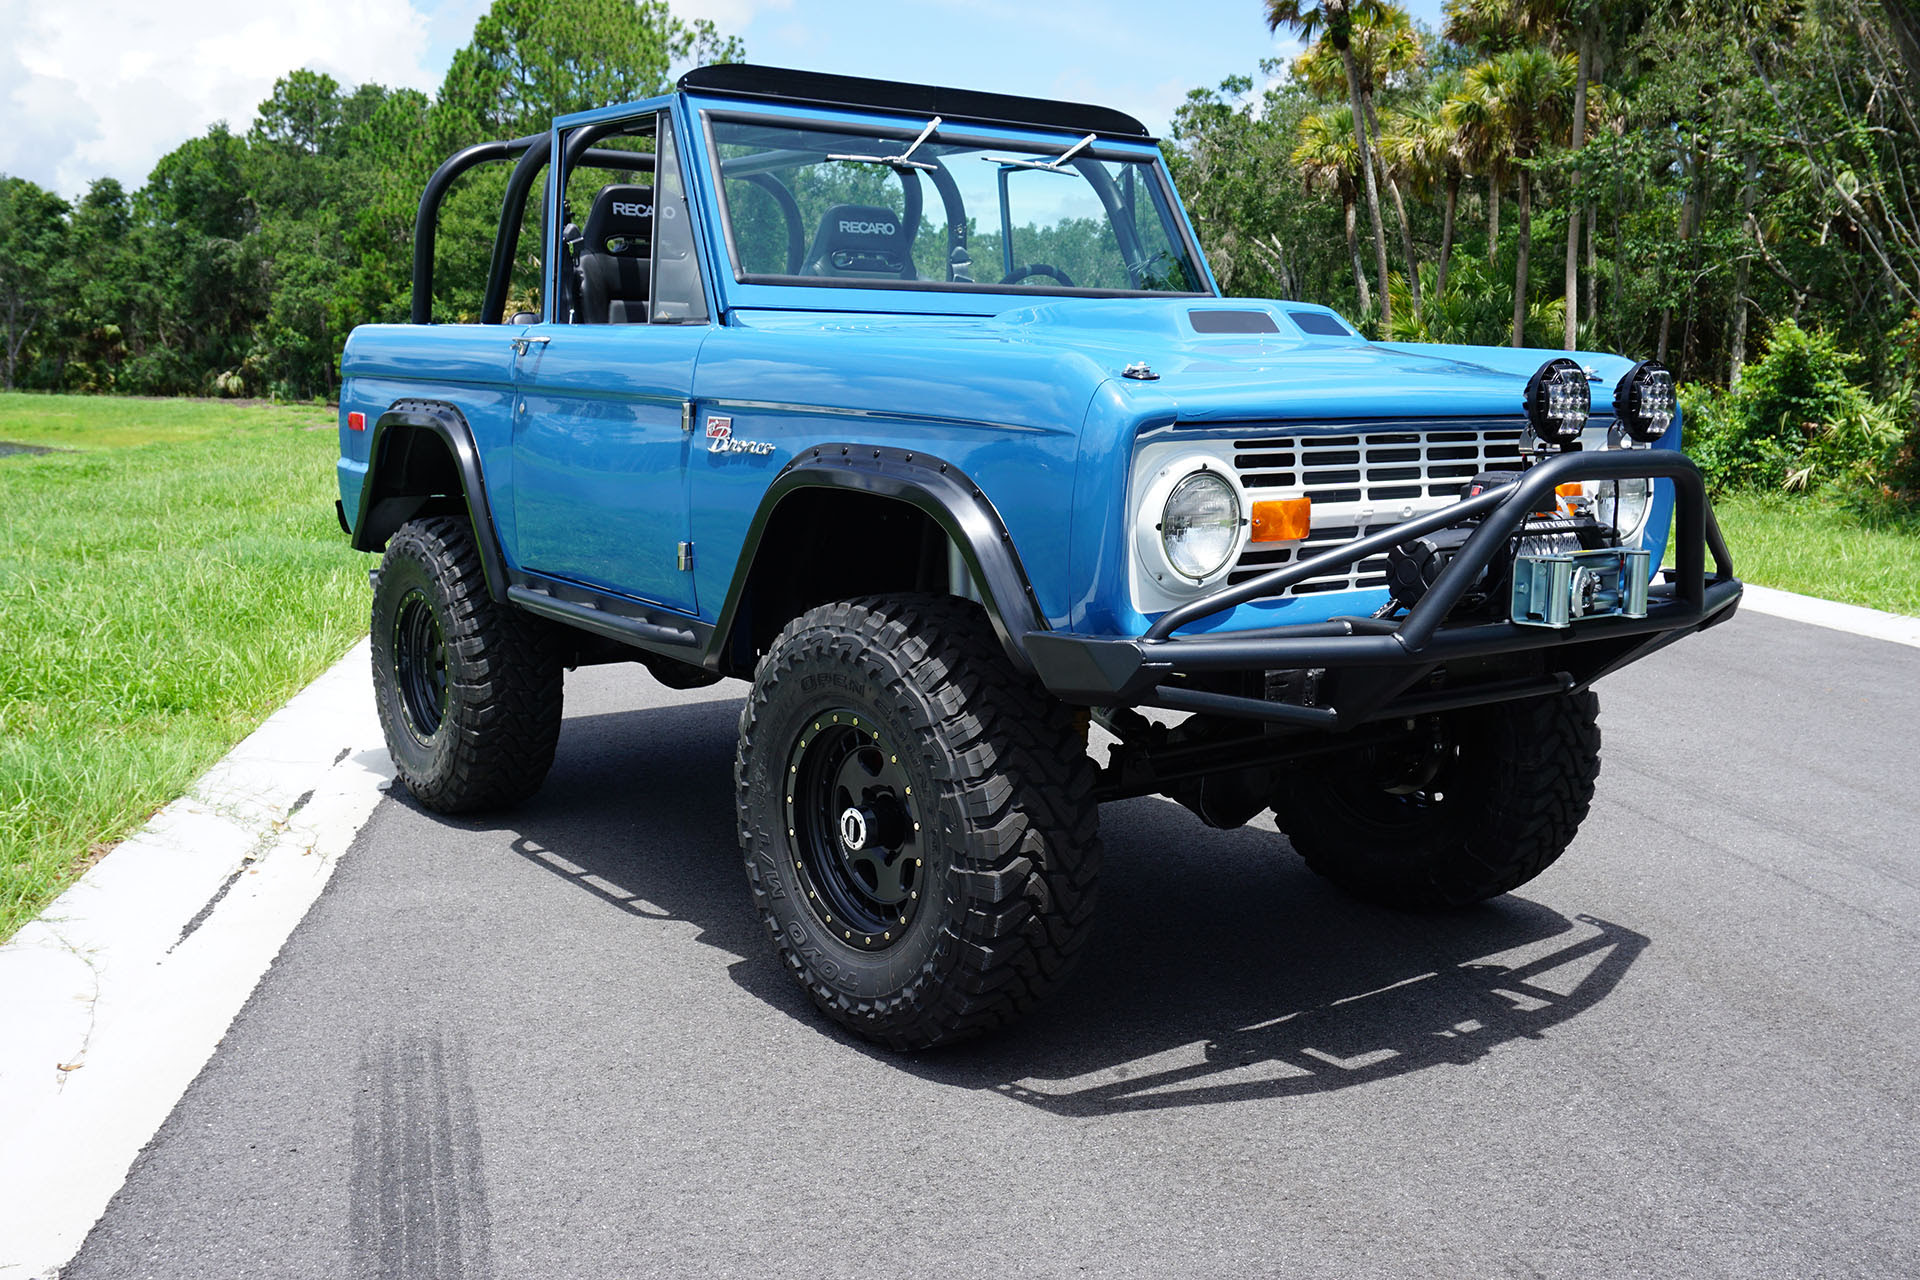 Ford Bronco Diesel Conversion | 2018, 2019, 2020 Ford Cars